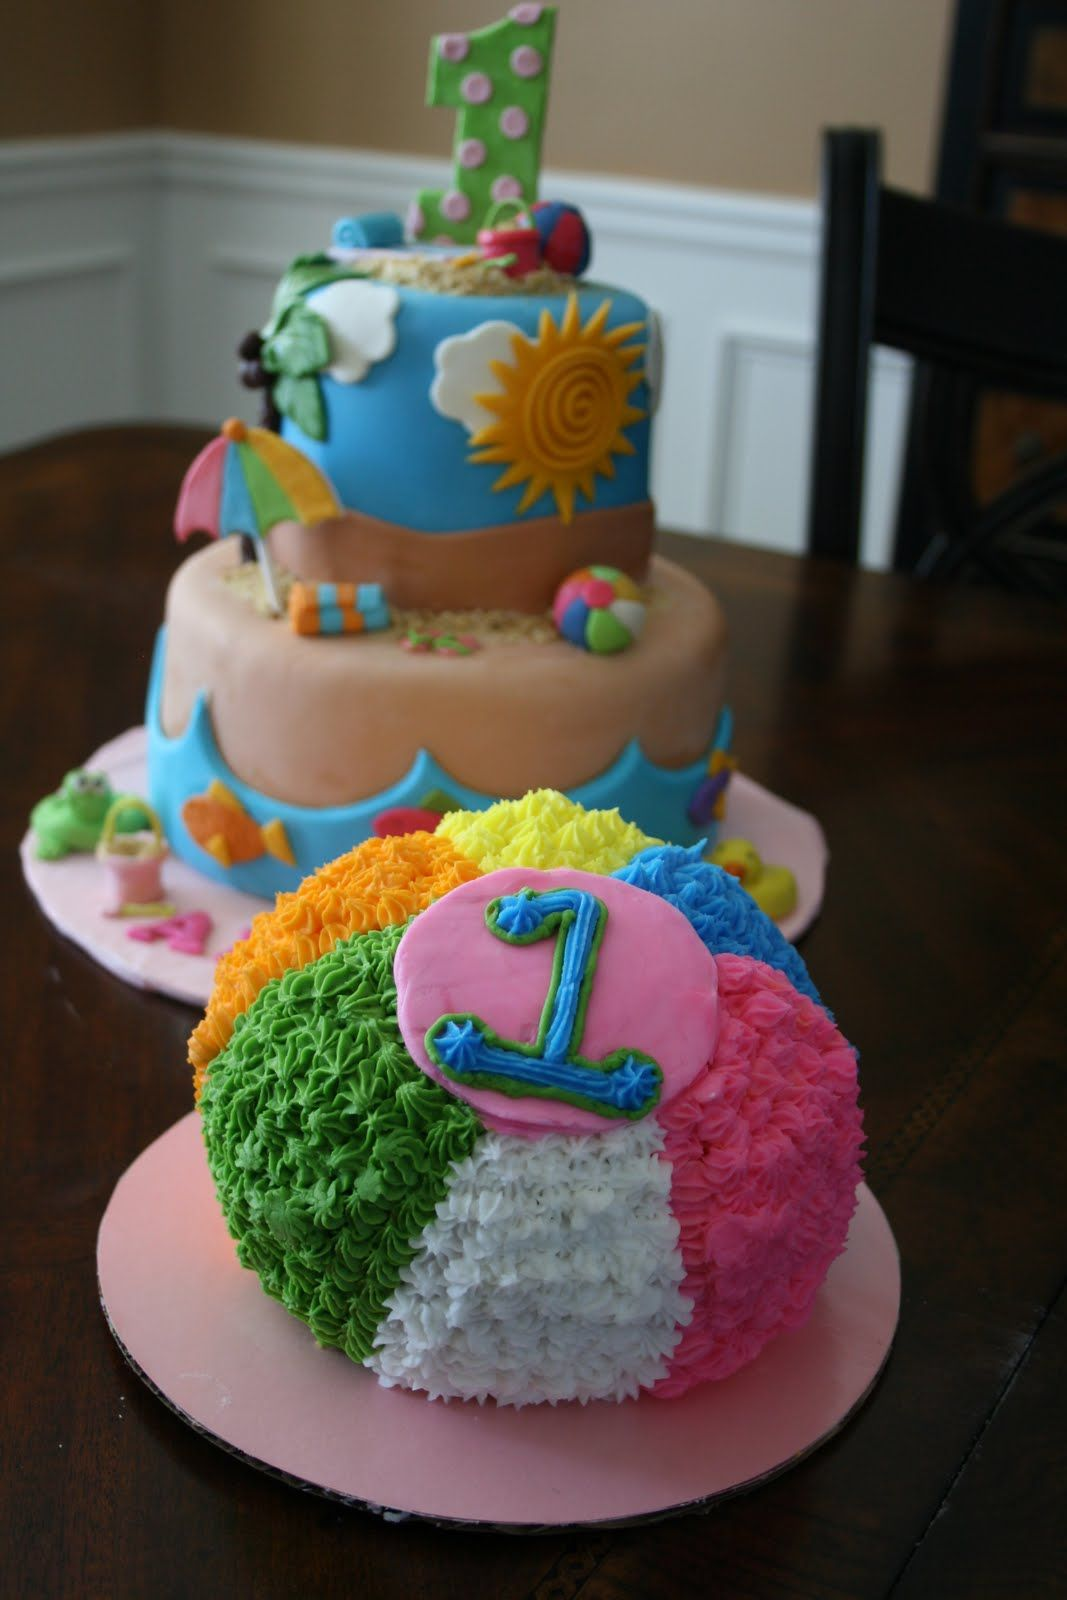 Beach Ball Cakeon The Right For 1 Year Old Birthday Cake Smash